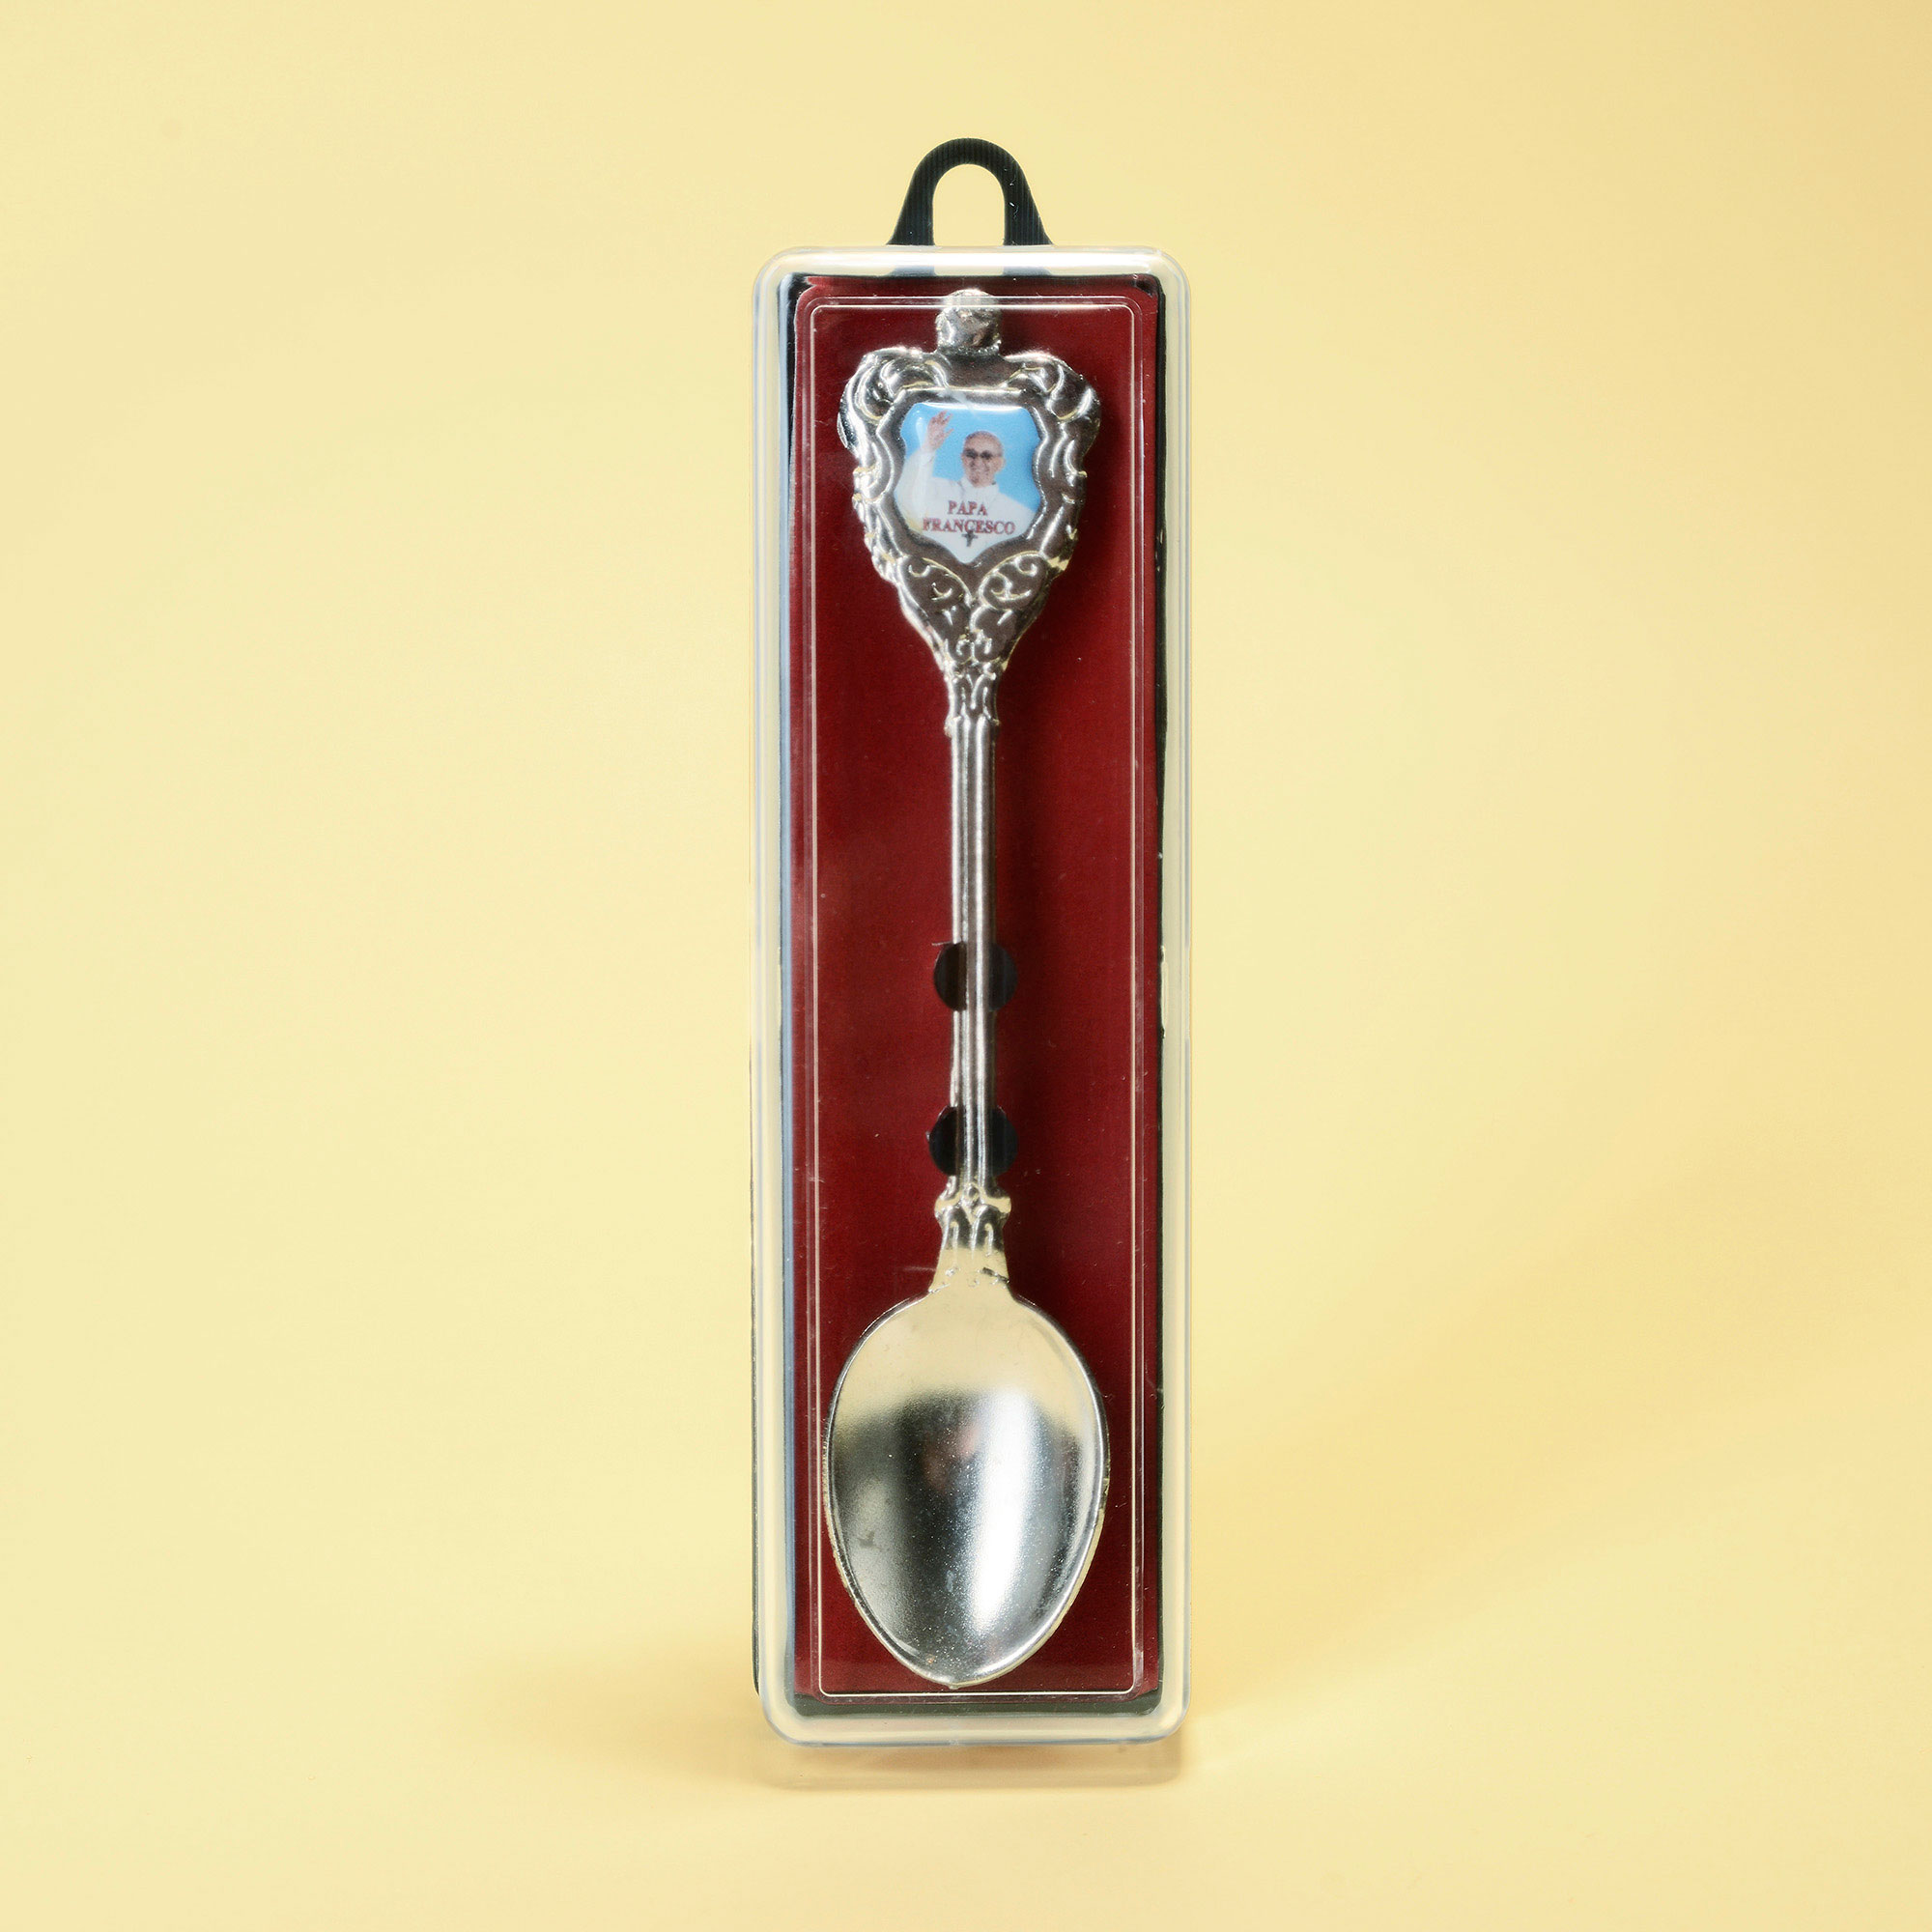 Metal spoon with little photograph of Pope Francis in plastic box.